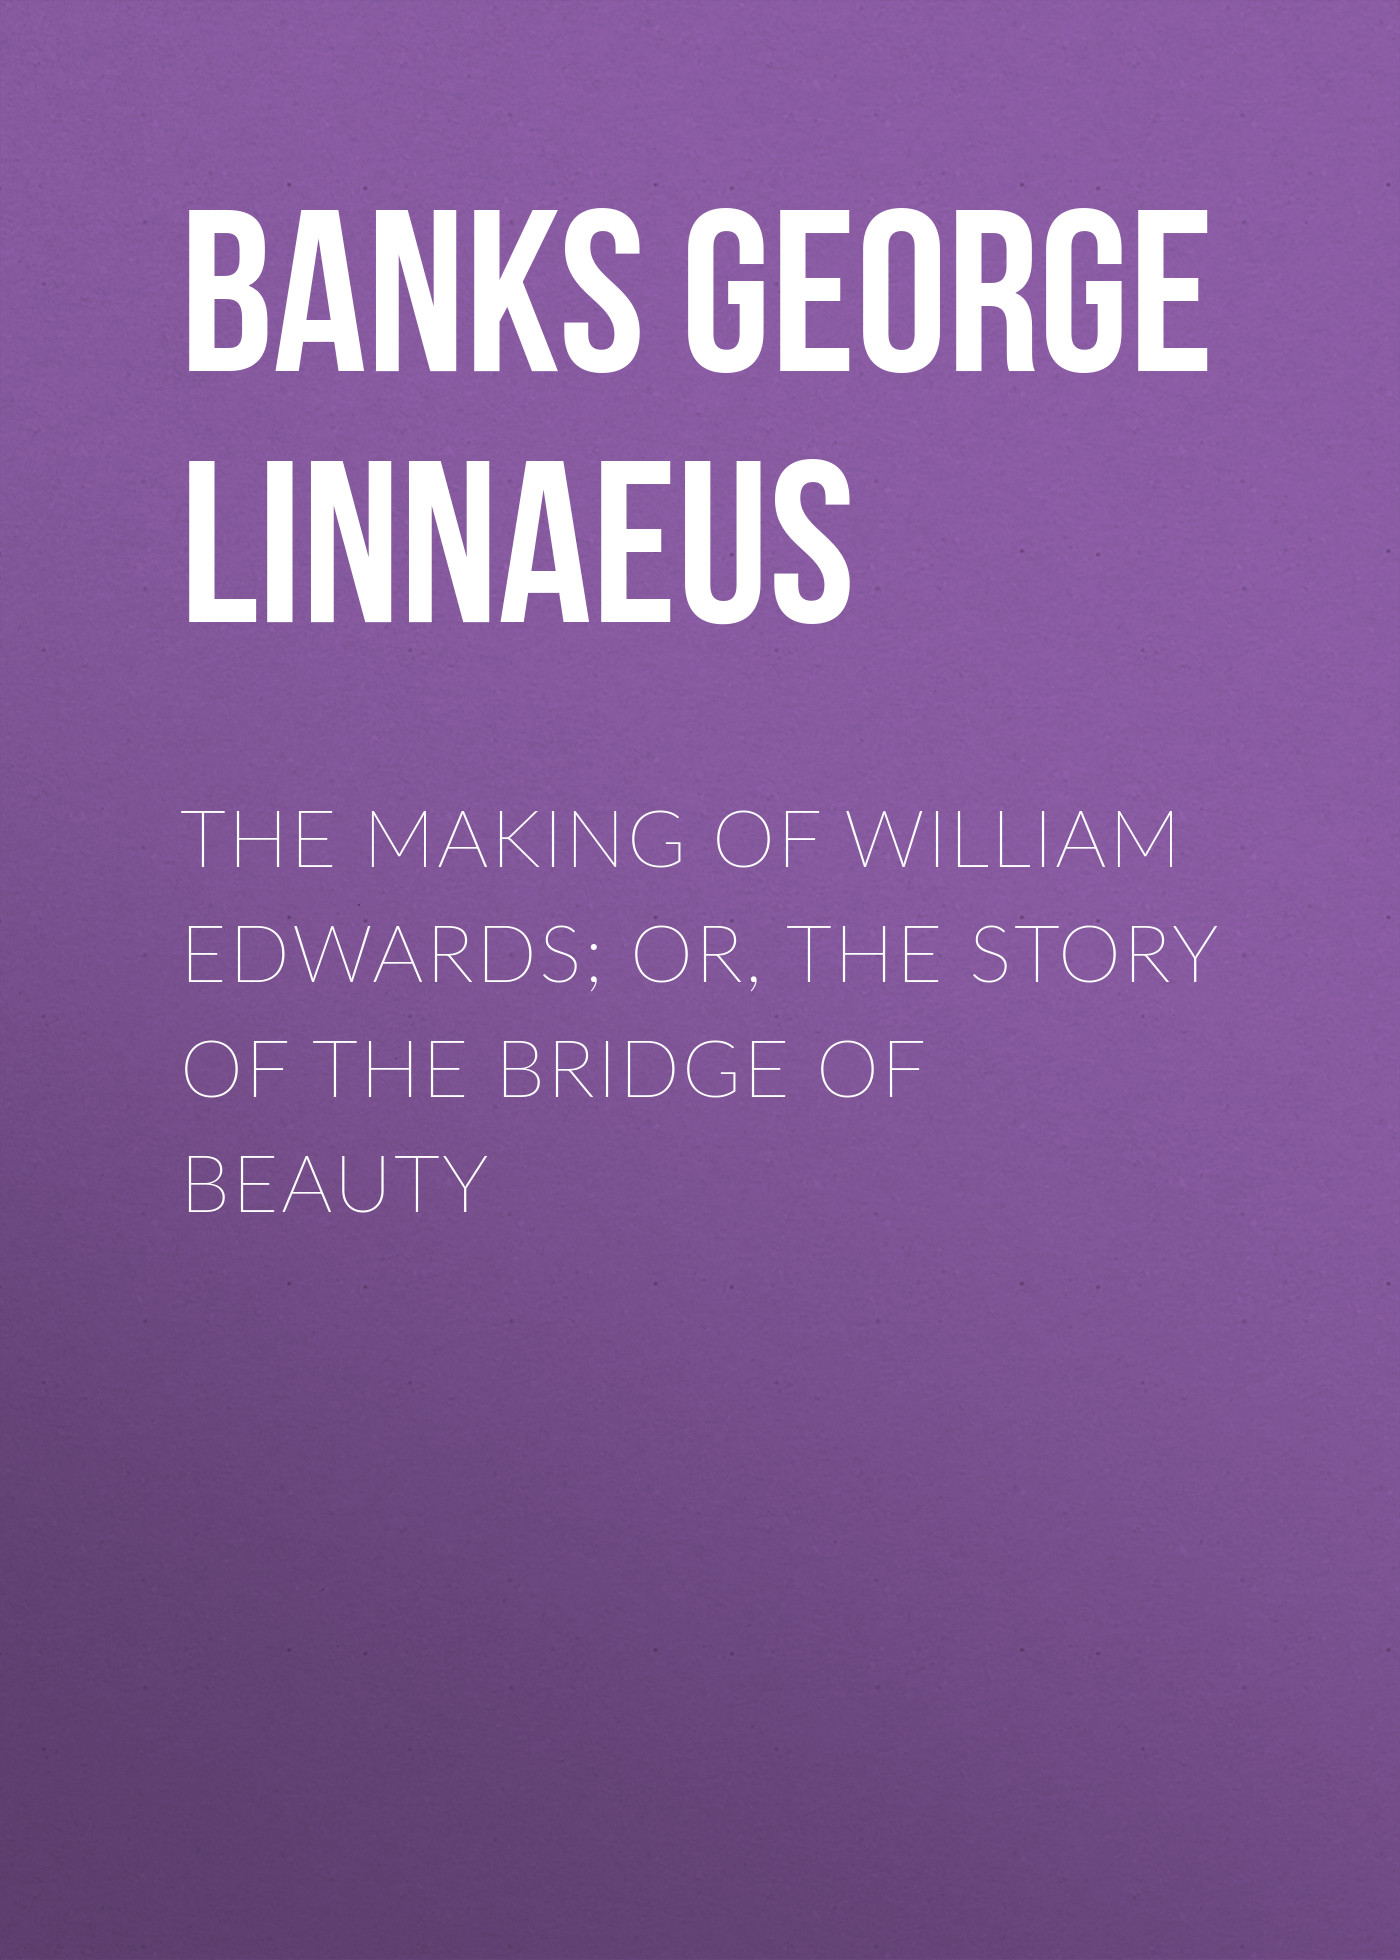 Banks George Linnaeus The Making of William Edwards; or, The Story of the Bridge of Beauty george leonard vose bridge disasters in america the cause and the remedy